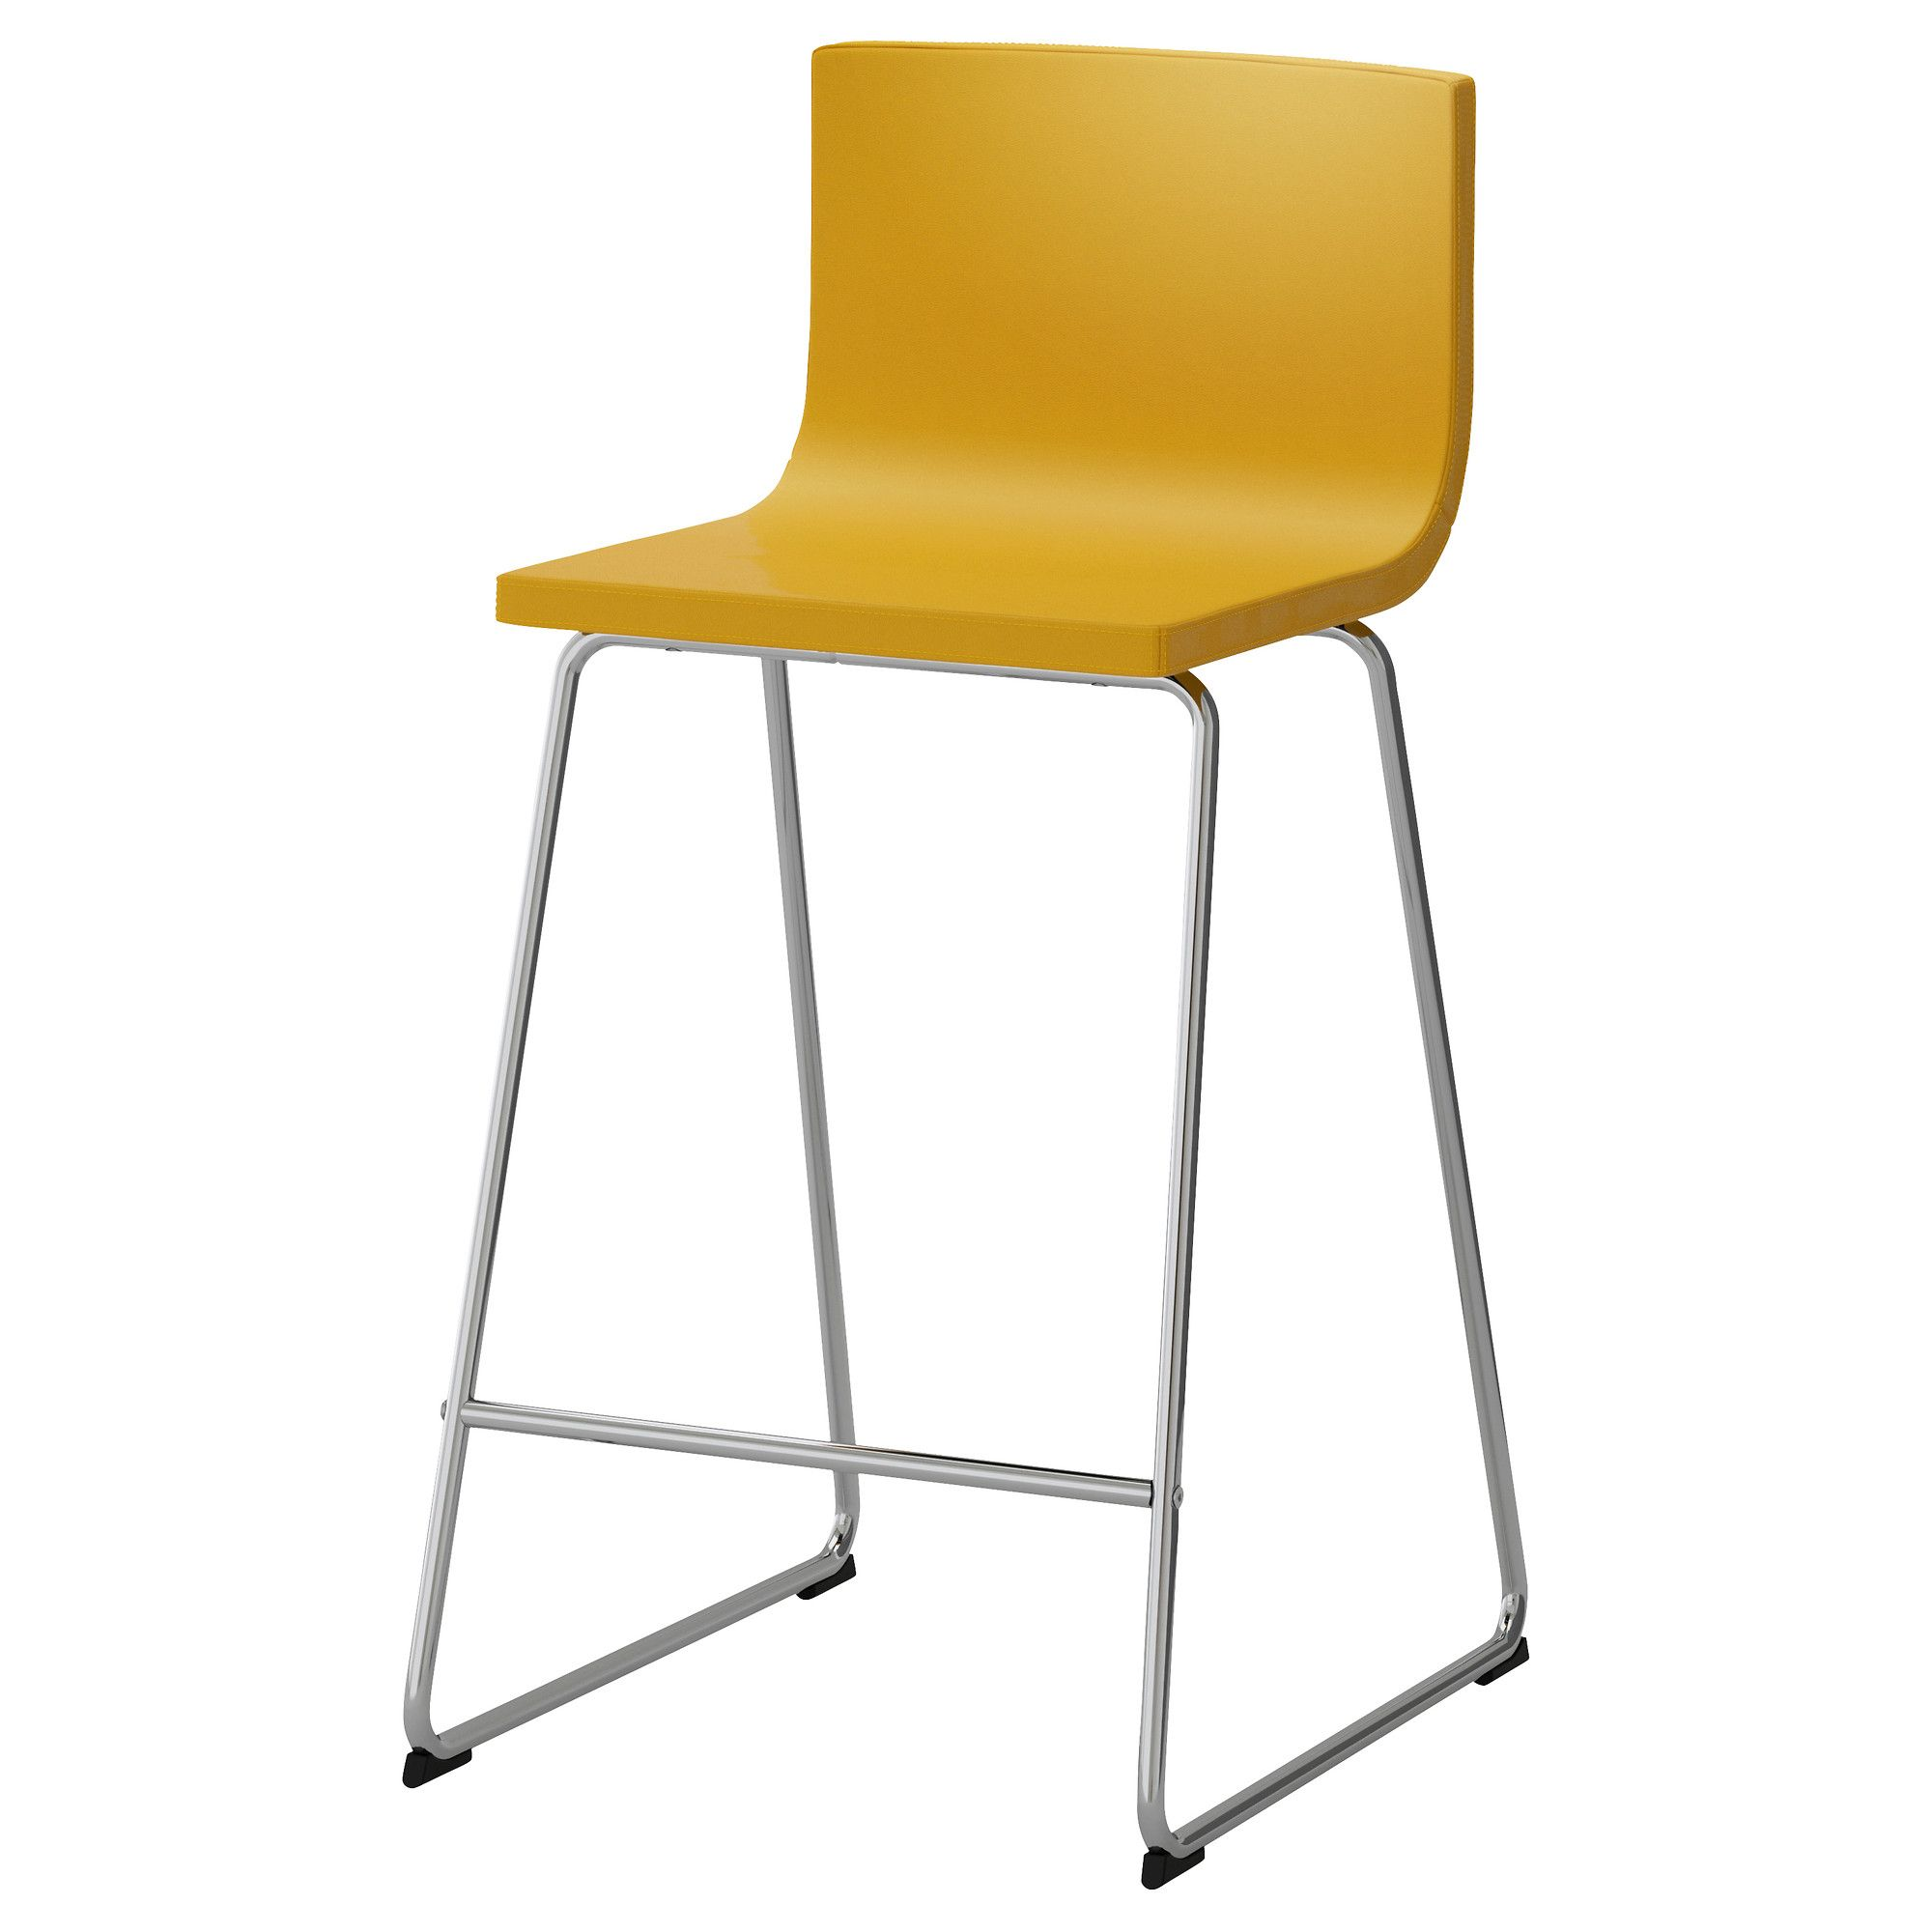 ikea bar chair patio covers at home depot bernhard stool with backrest you sit